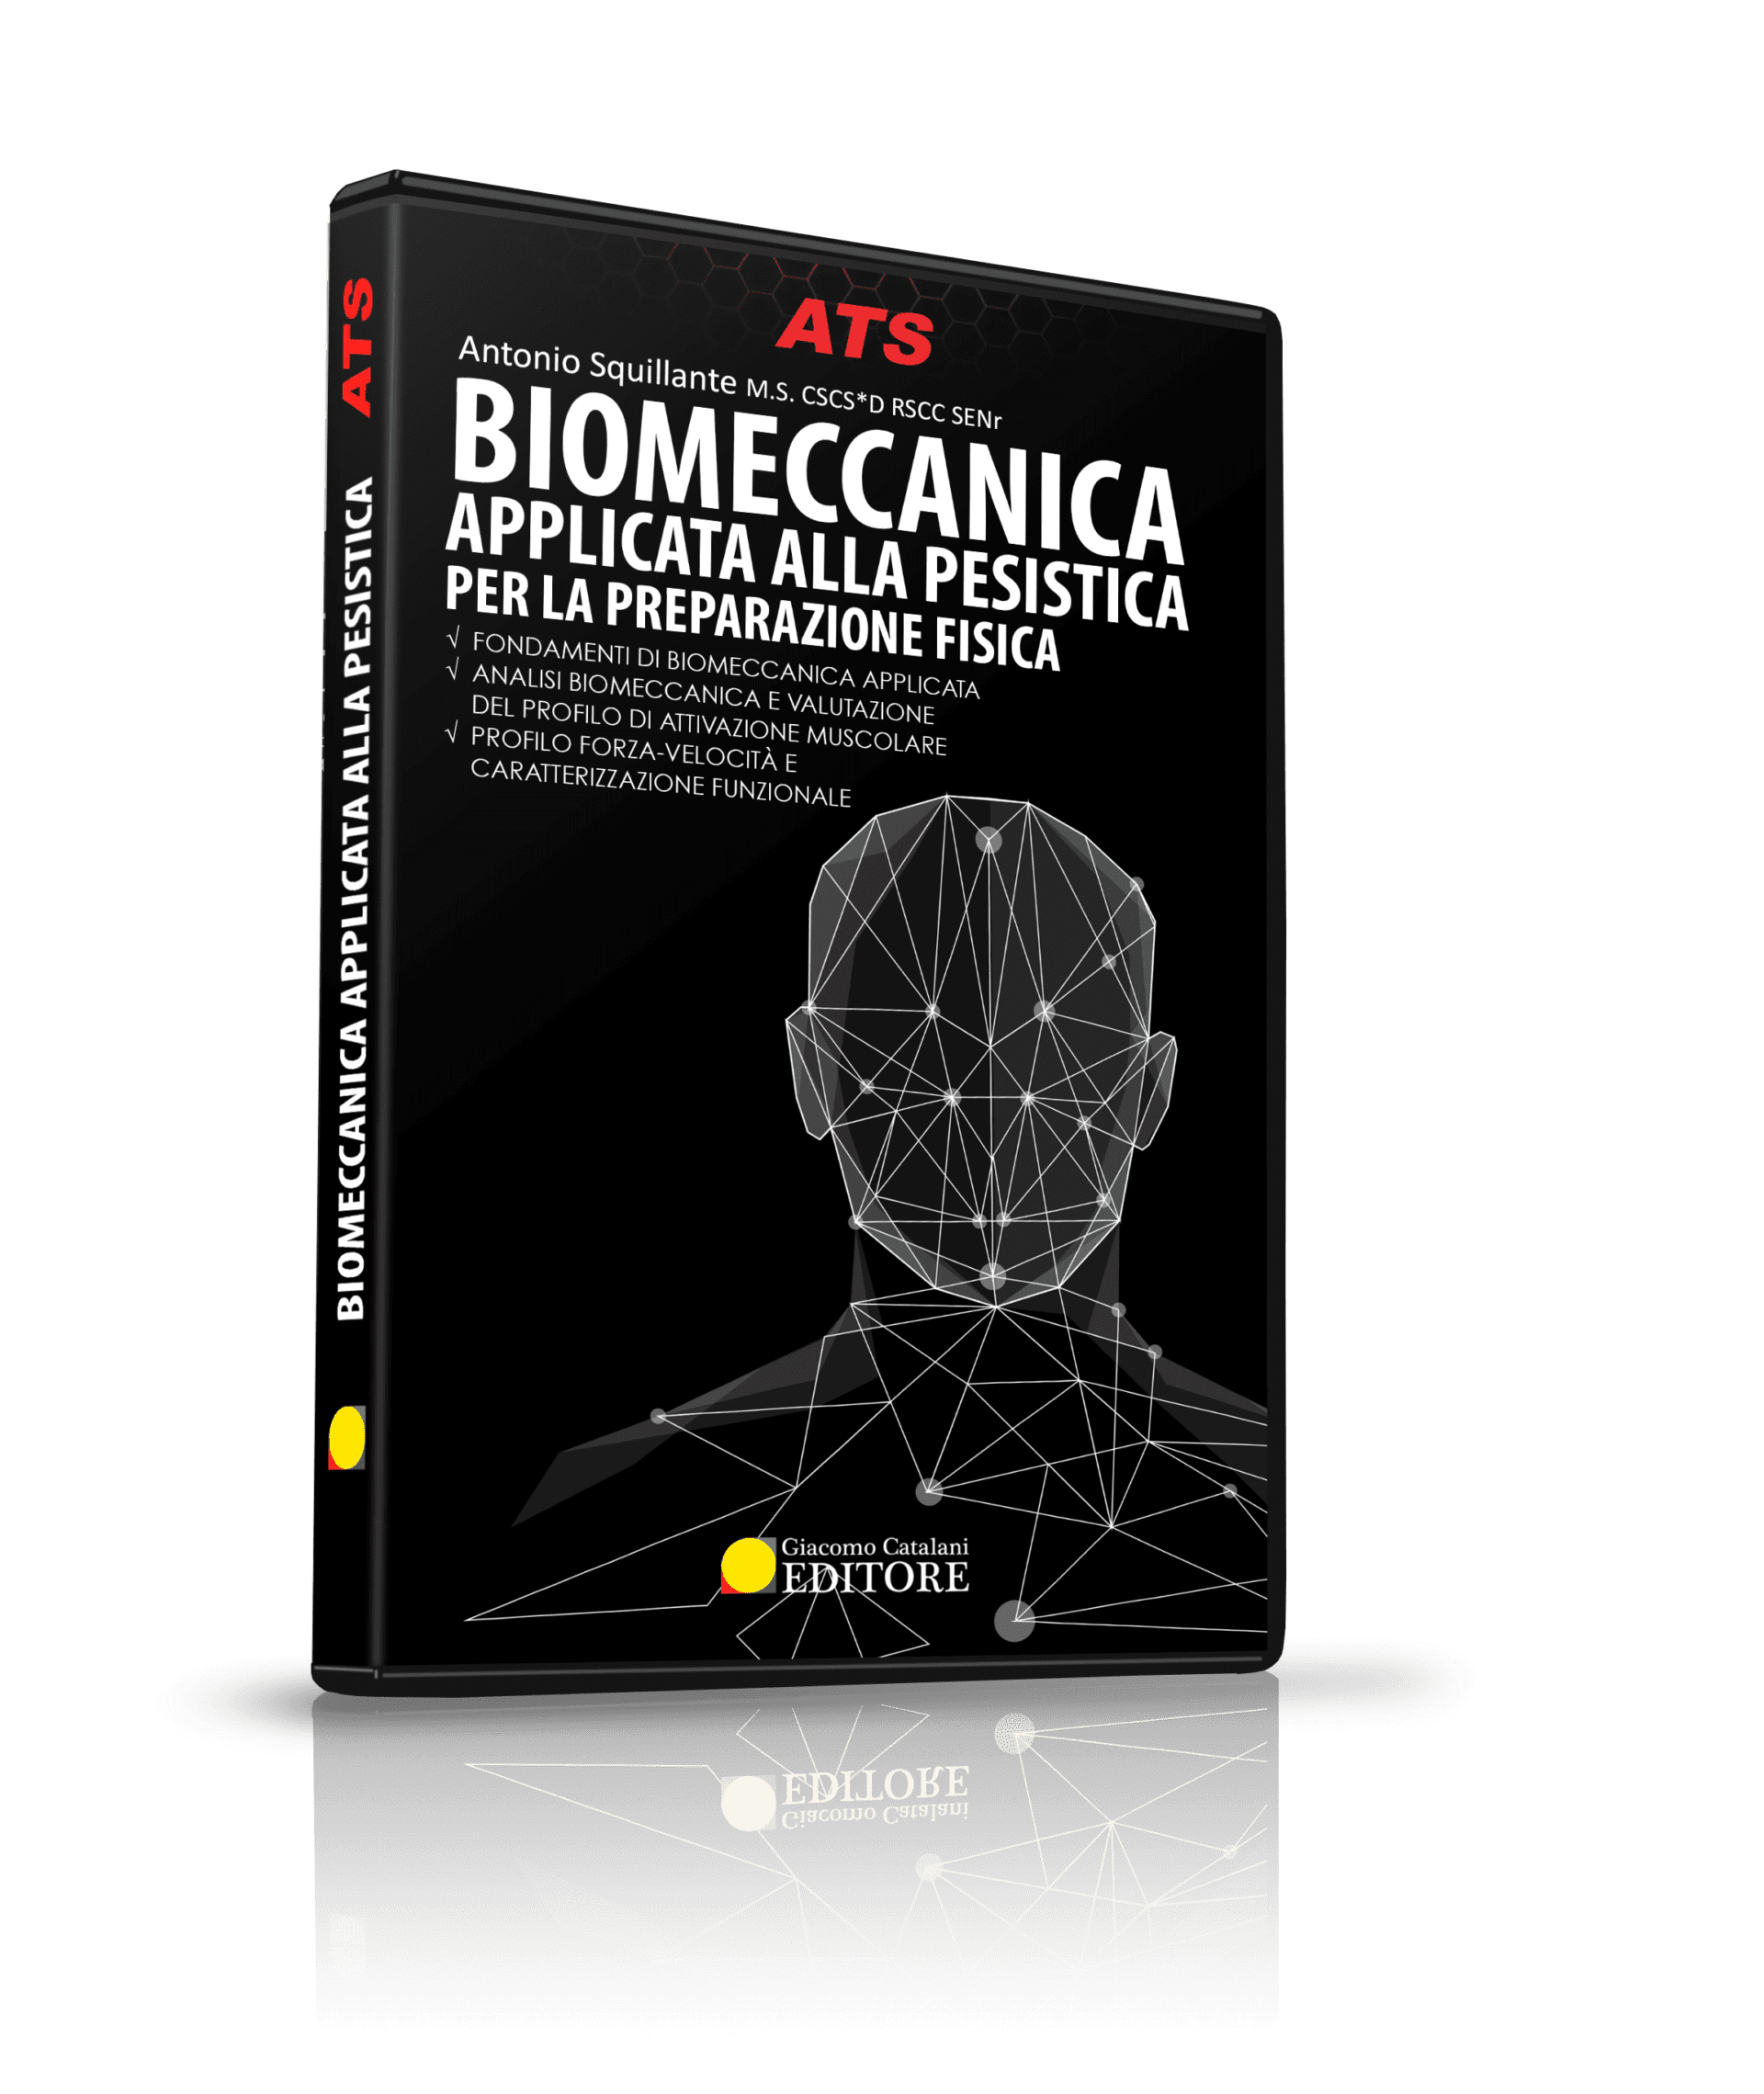 Biomeccanica-Applicata-Forza-ATS